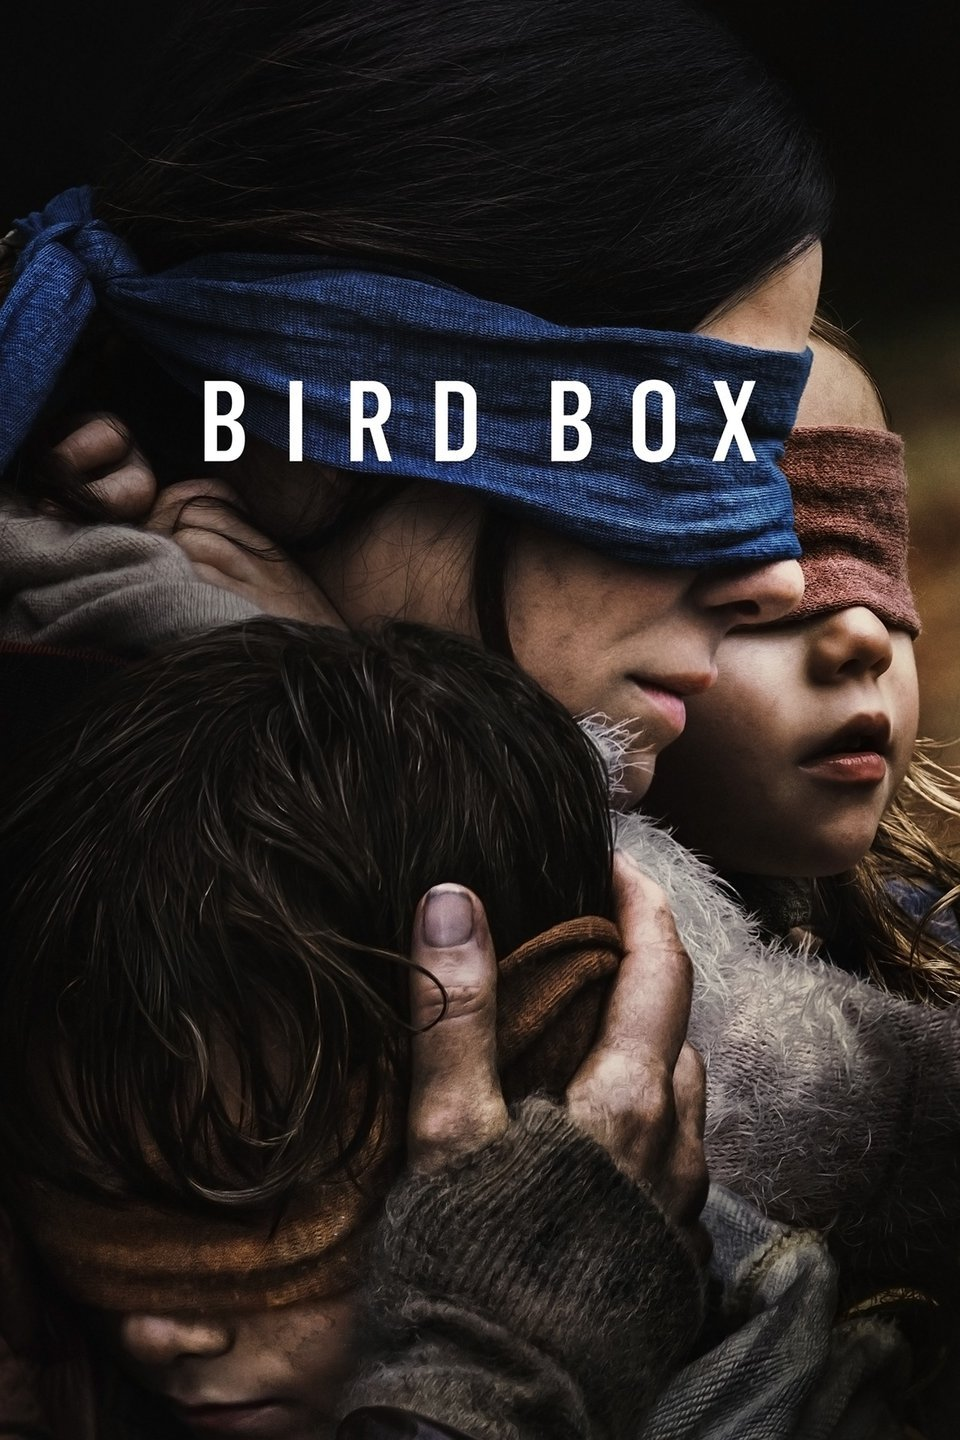 bird box full movie in hindi dubbed download 480p